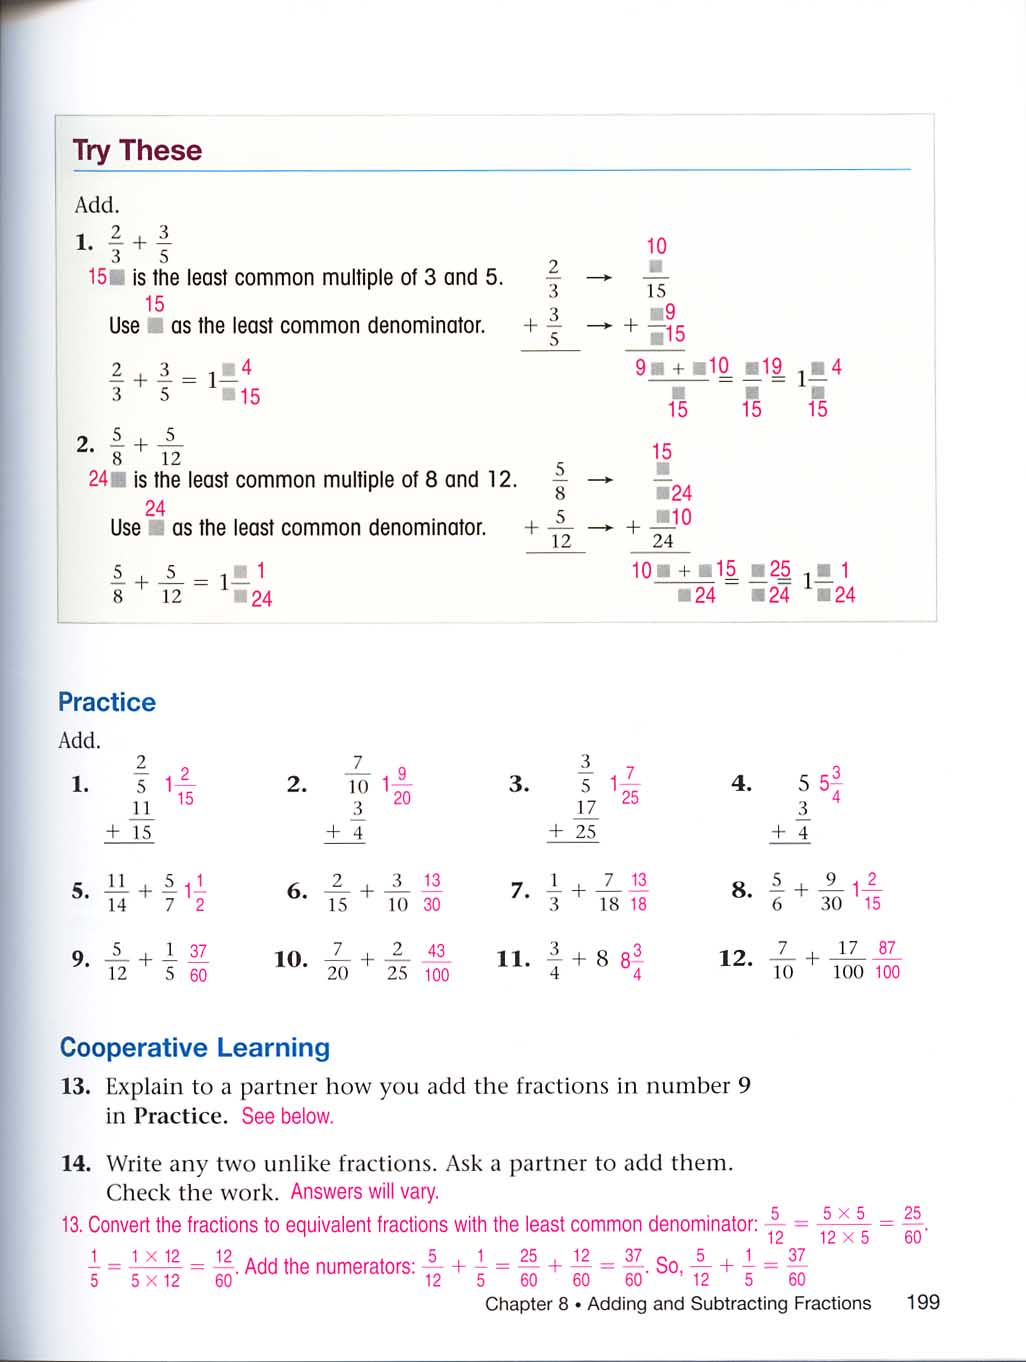 Kuta Worksheets Algebra 2 Deployday – Algebra 2 Worksheets with Answer Key